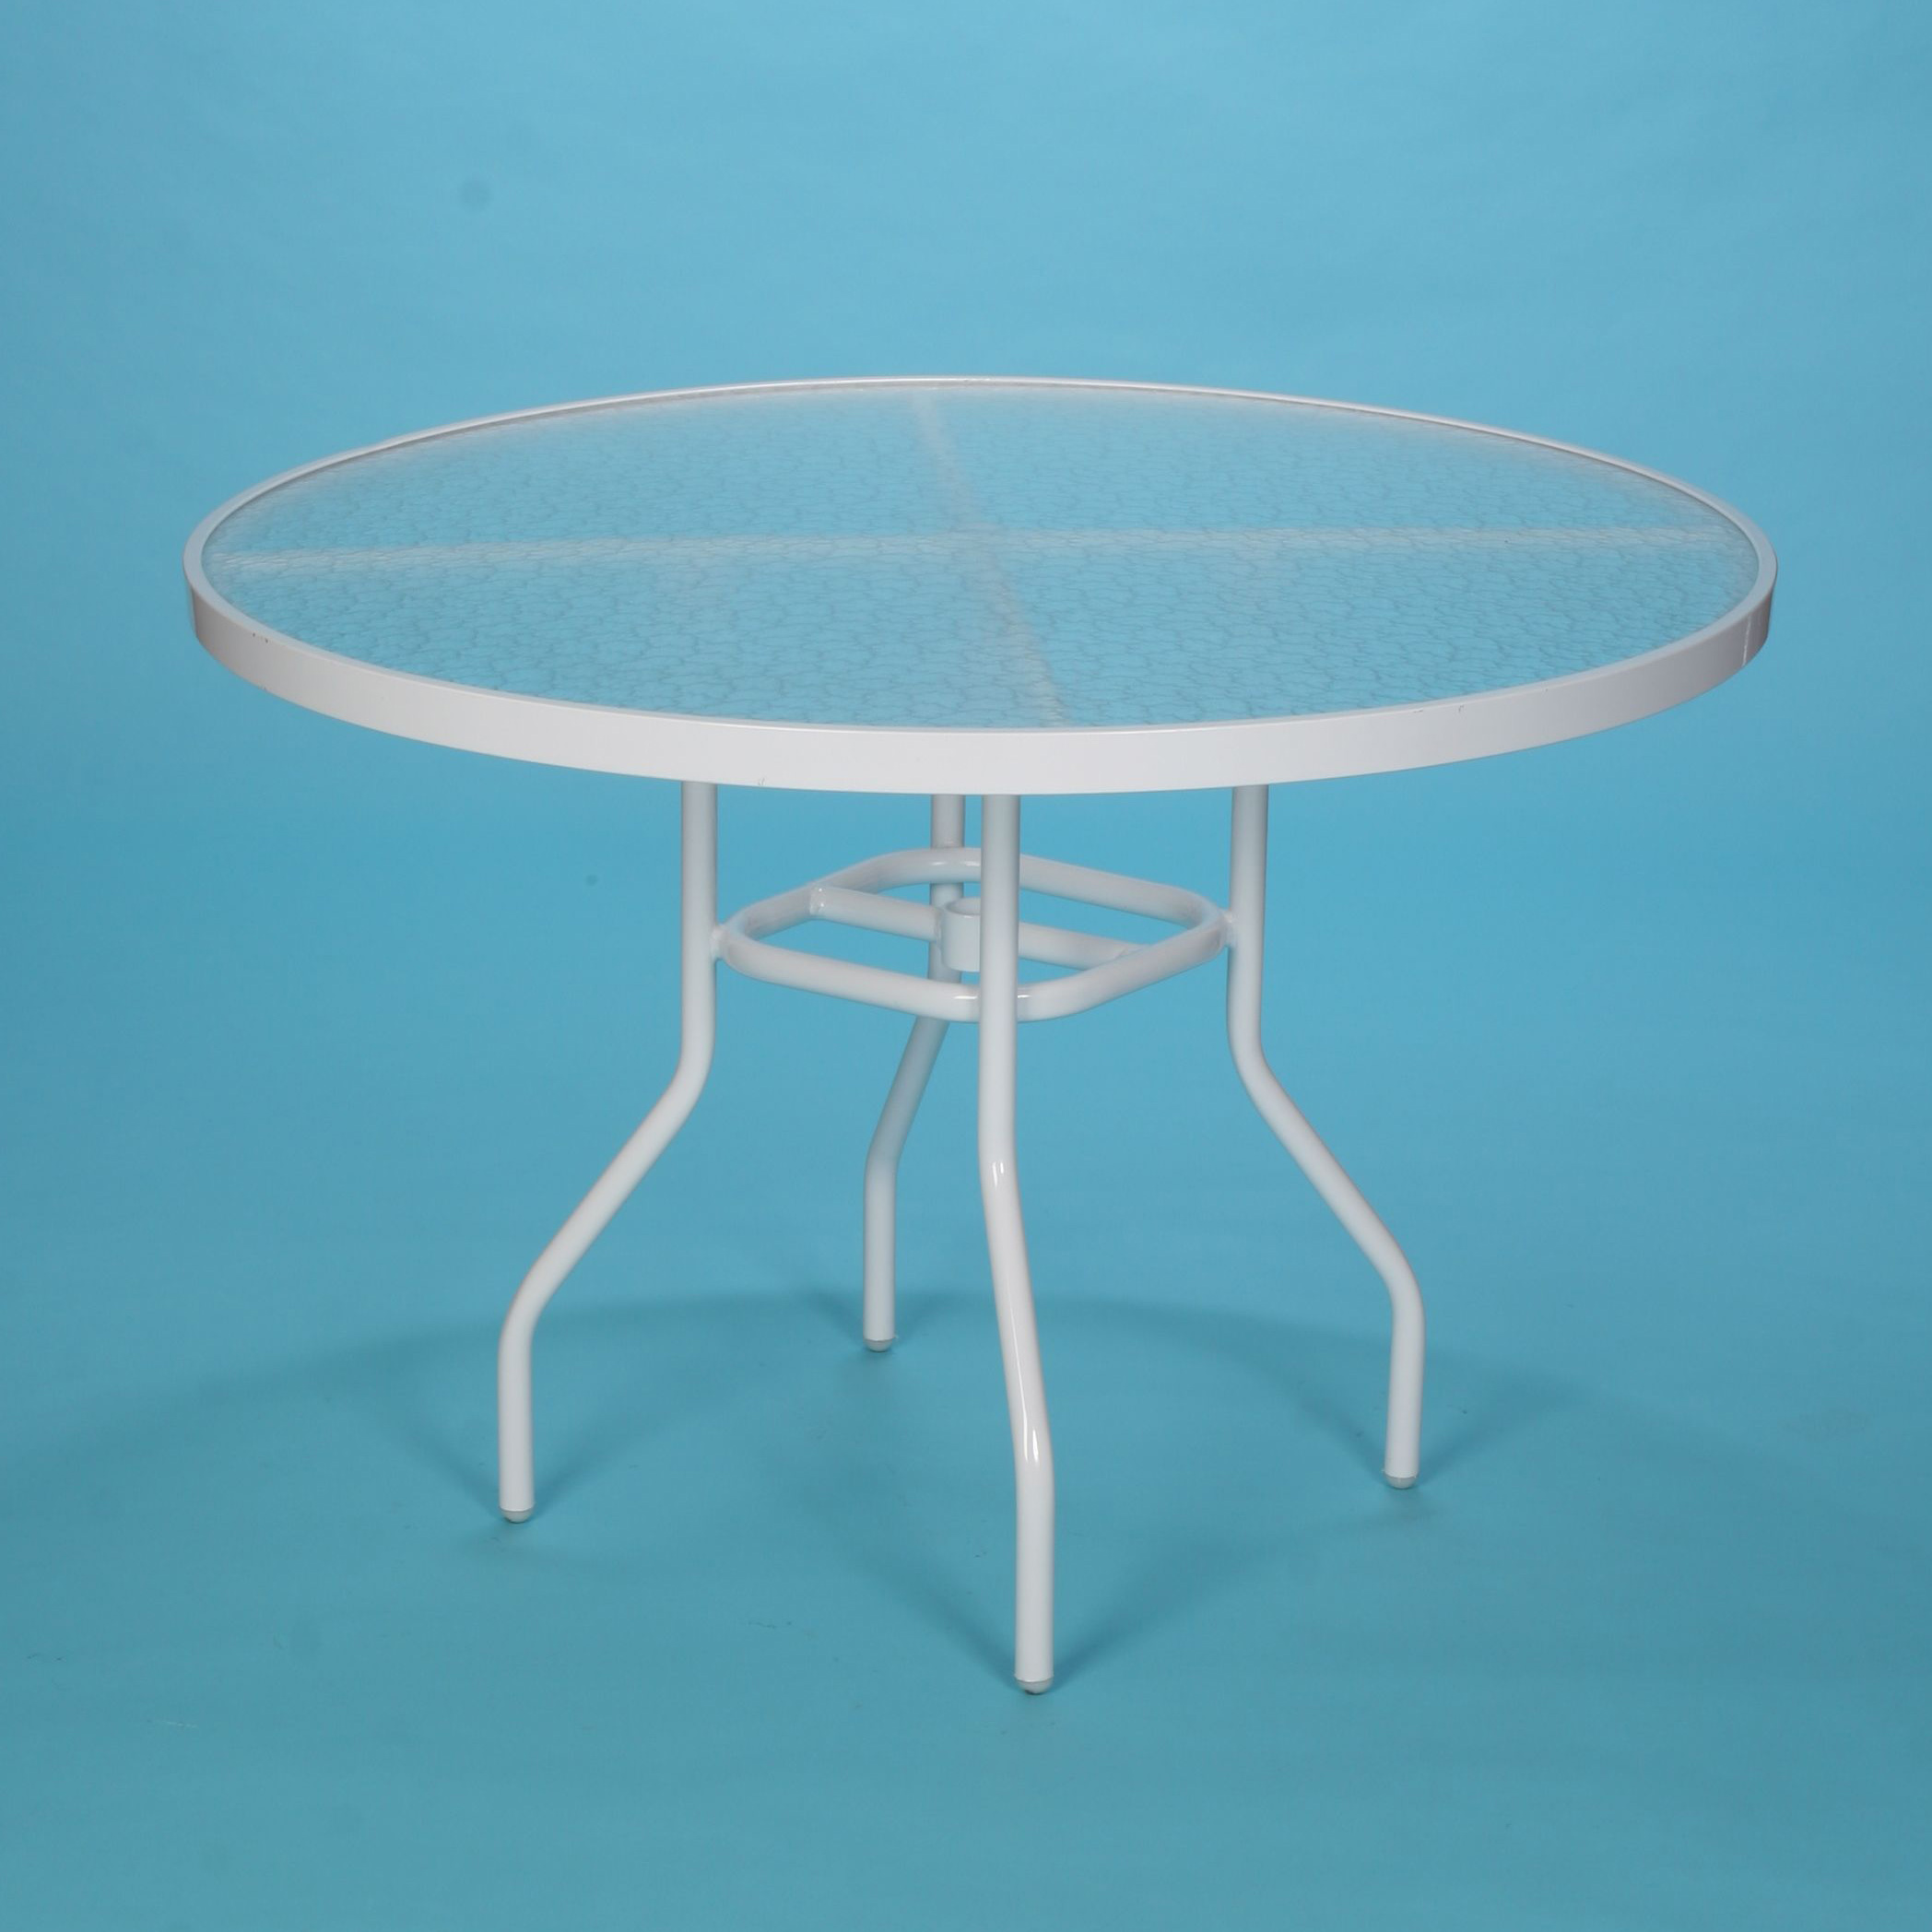 36 Round Acrylic Top Dining Table